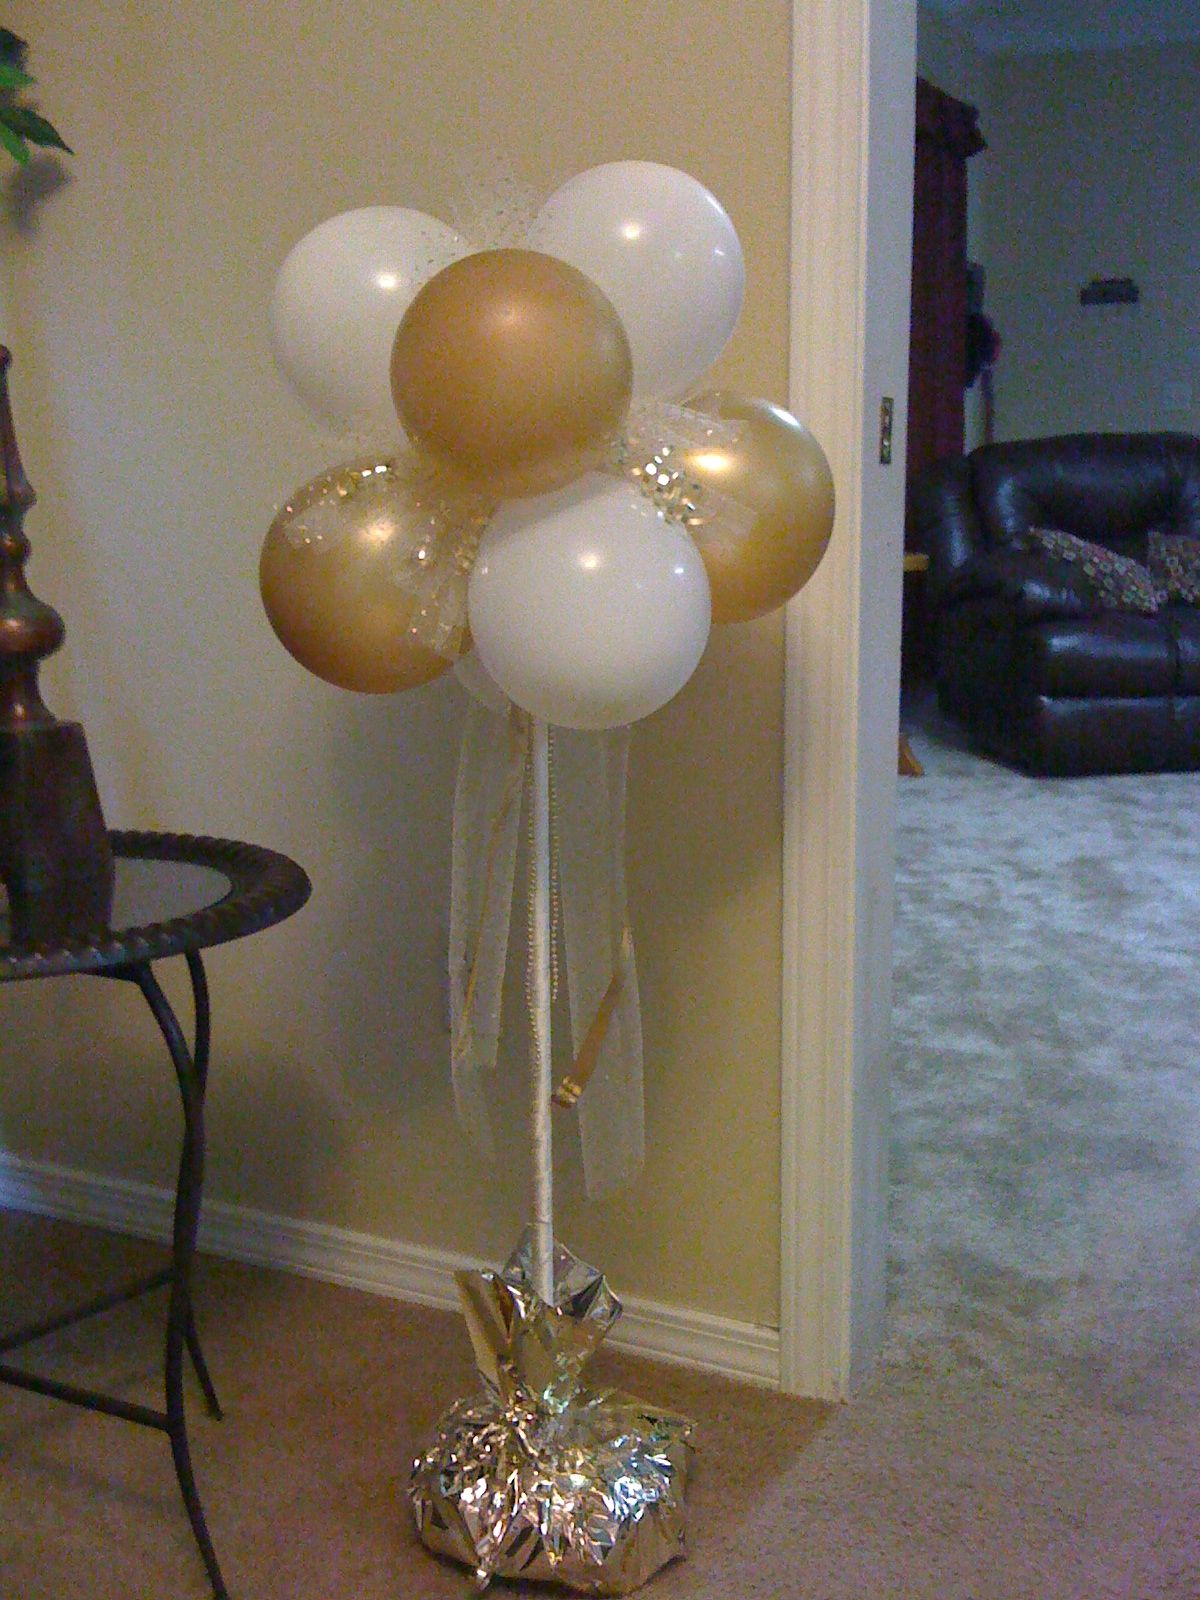 50th wedding decorations ideas  th anniverary balloon bouquet The dowel rod is inserted in a